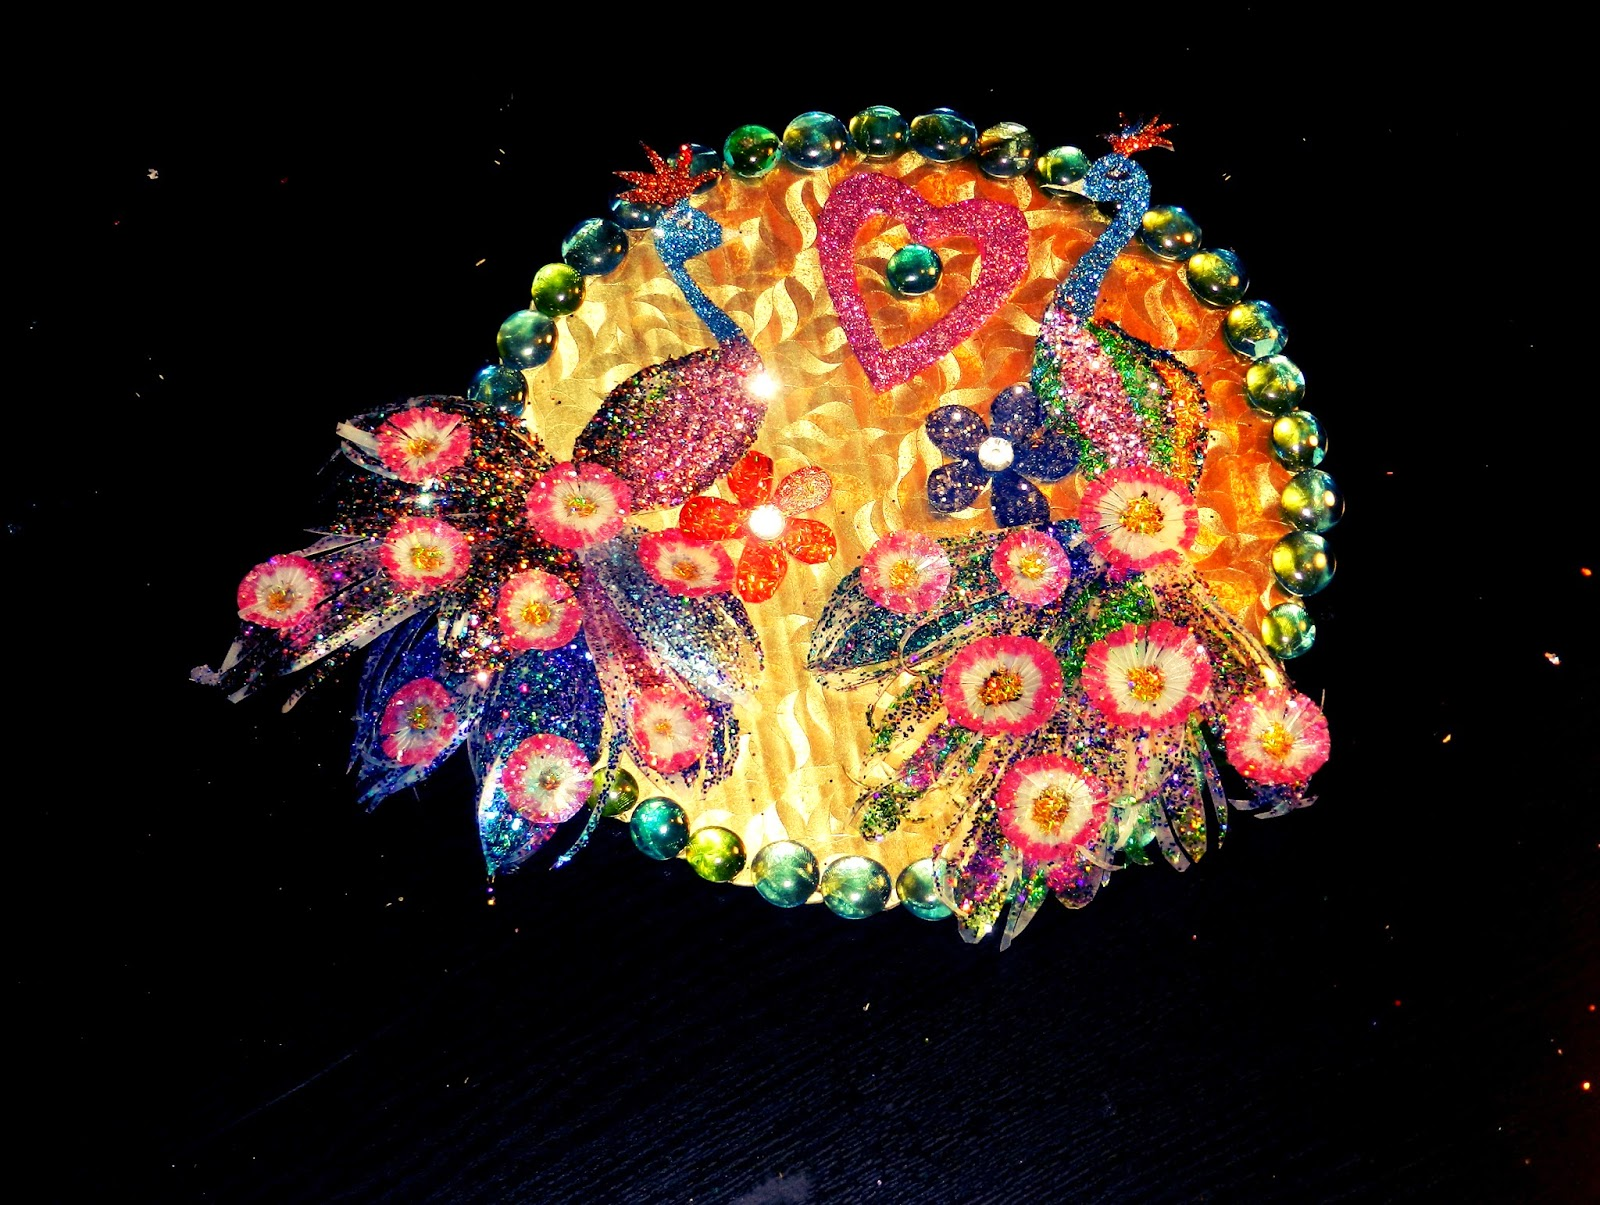 Creative decoration idea from waste materials crazzy craft for Decoration from waste materials